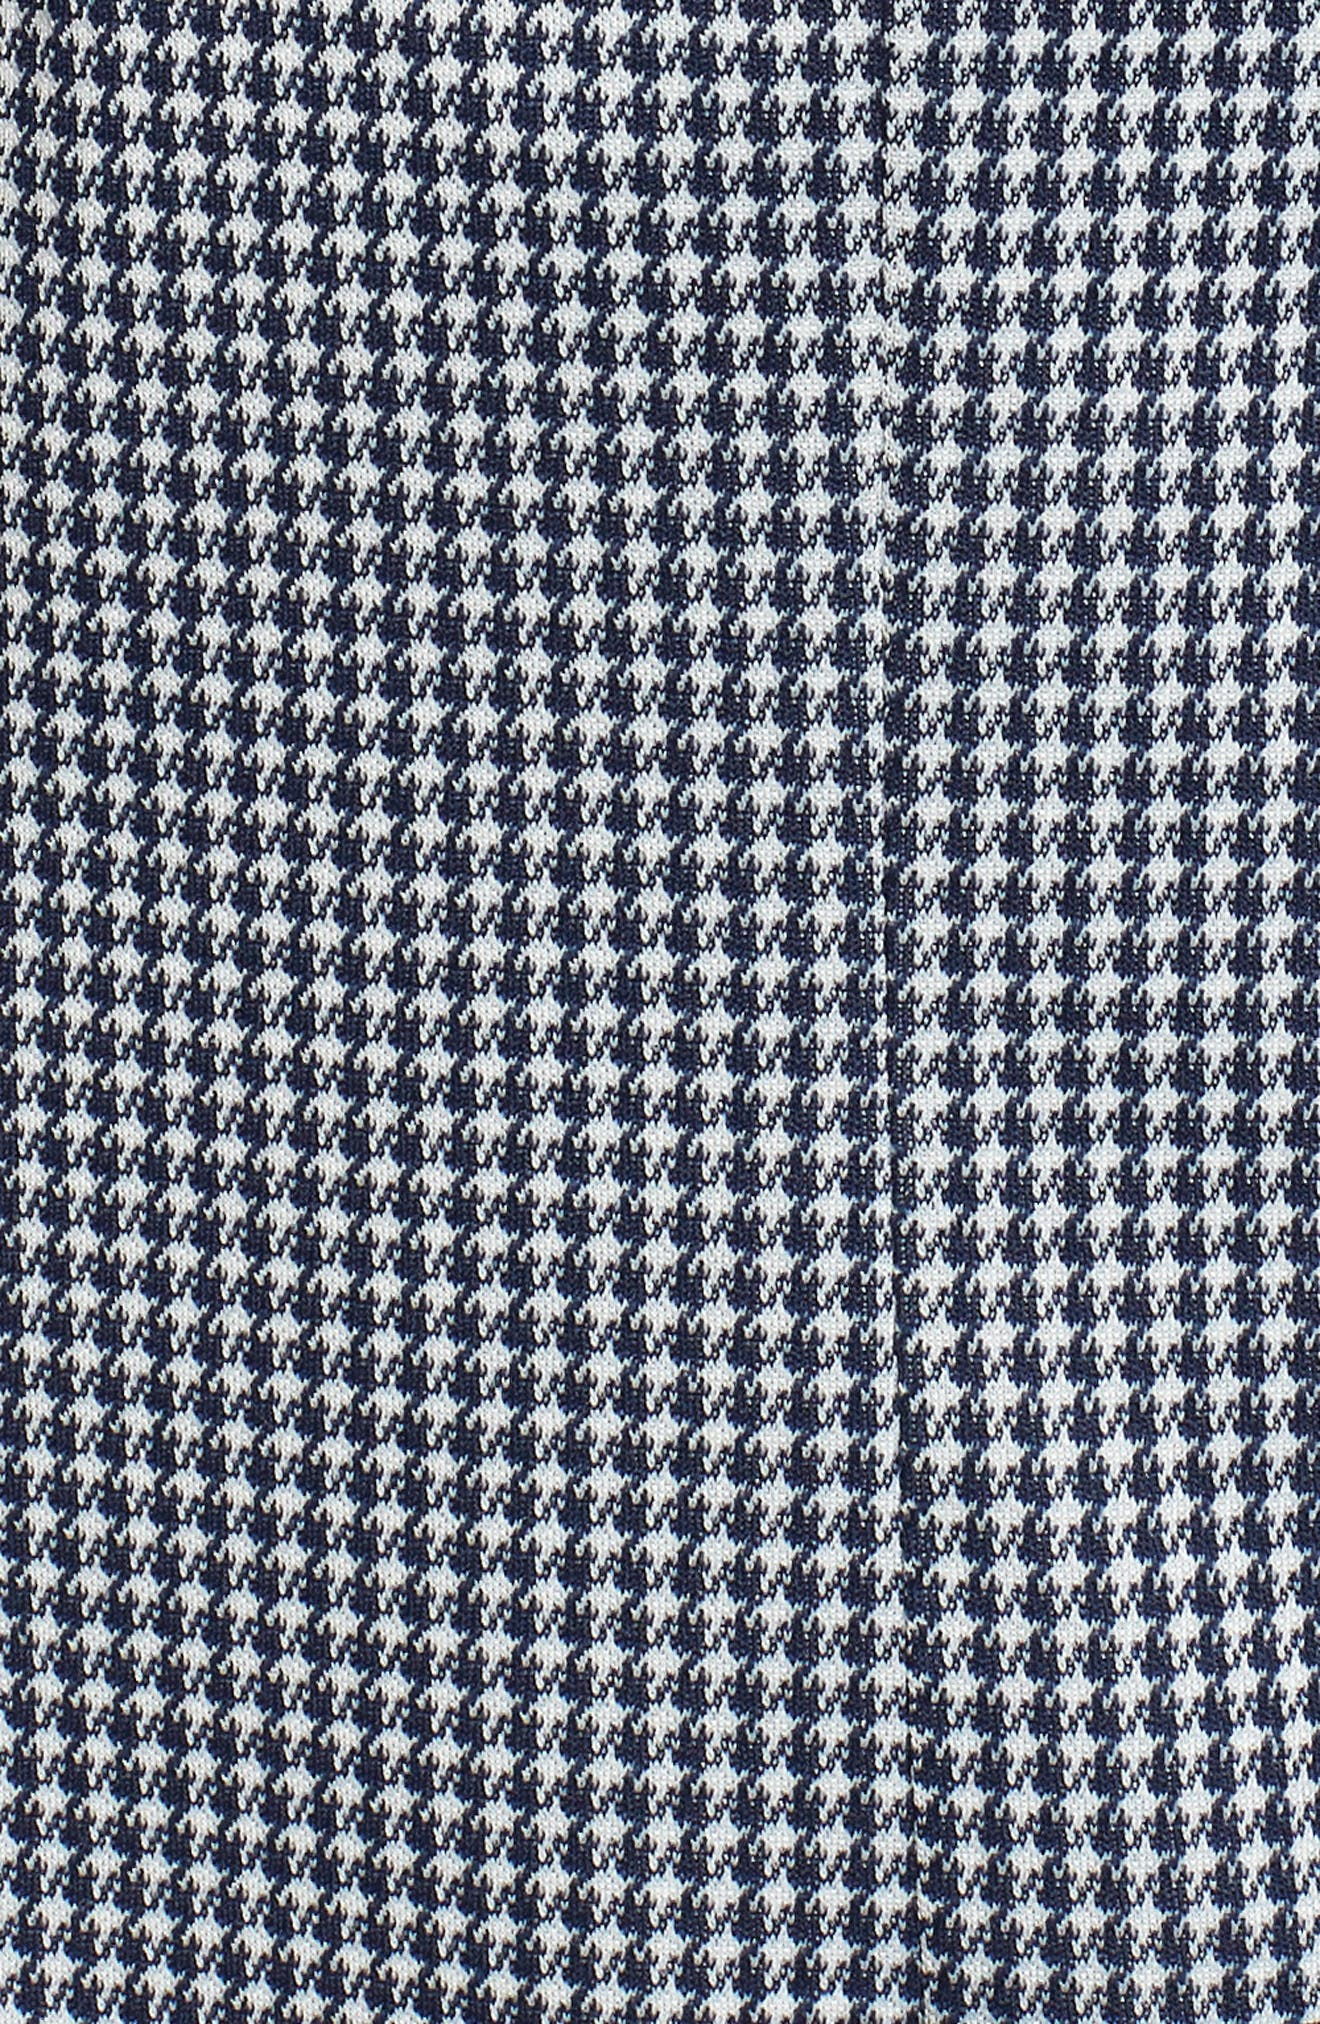 Slim Fit Stretch Houndstooth Sport Coat,                             Alternate thumbnail 6, color,                             NAVY CHECK